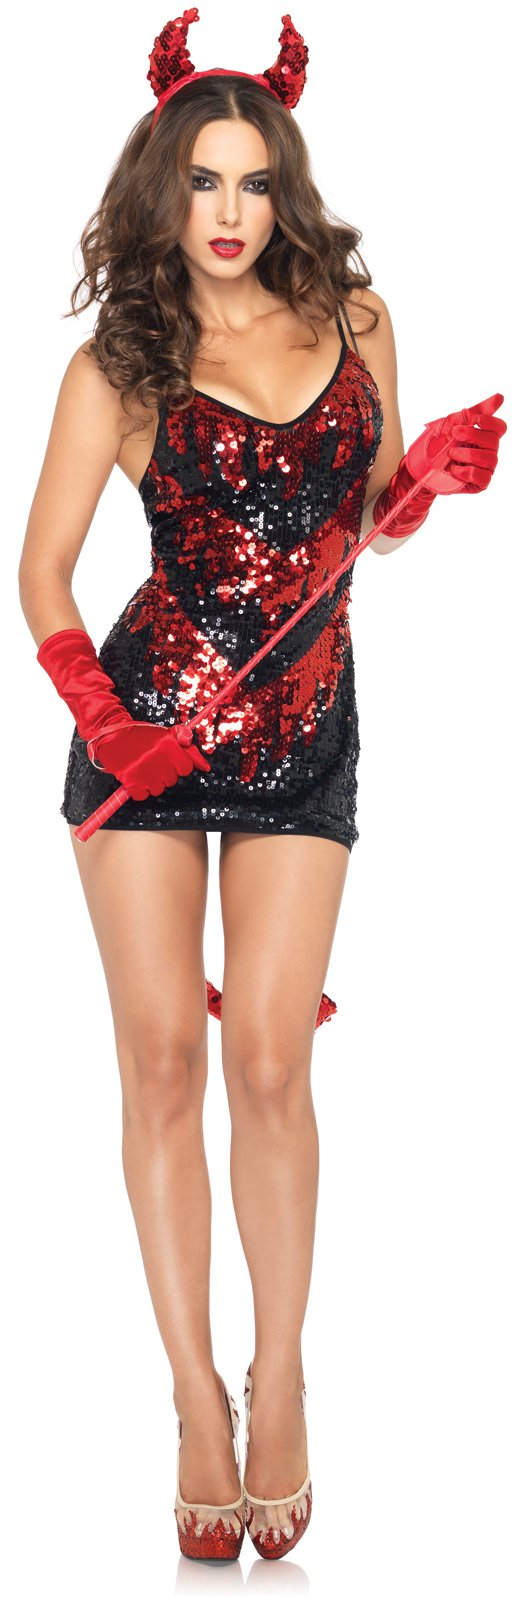 Demon Darling Adult Costume